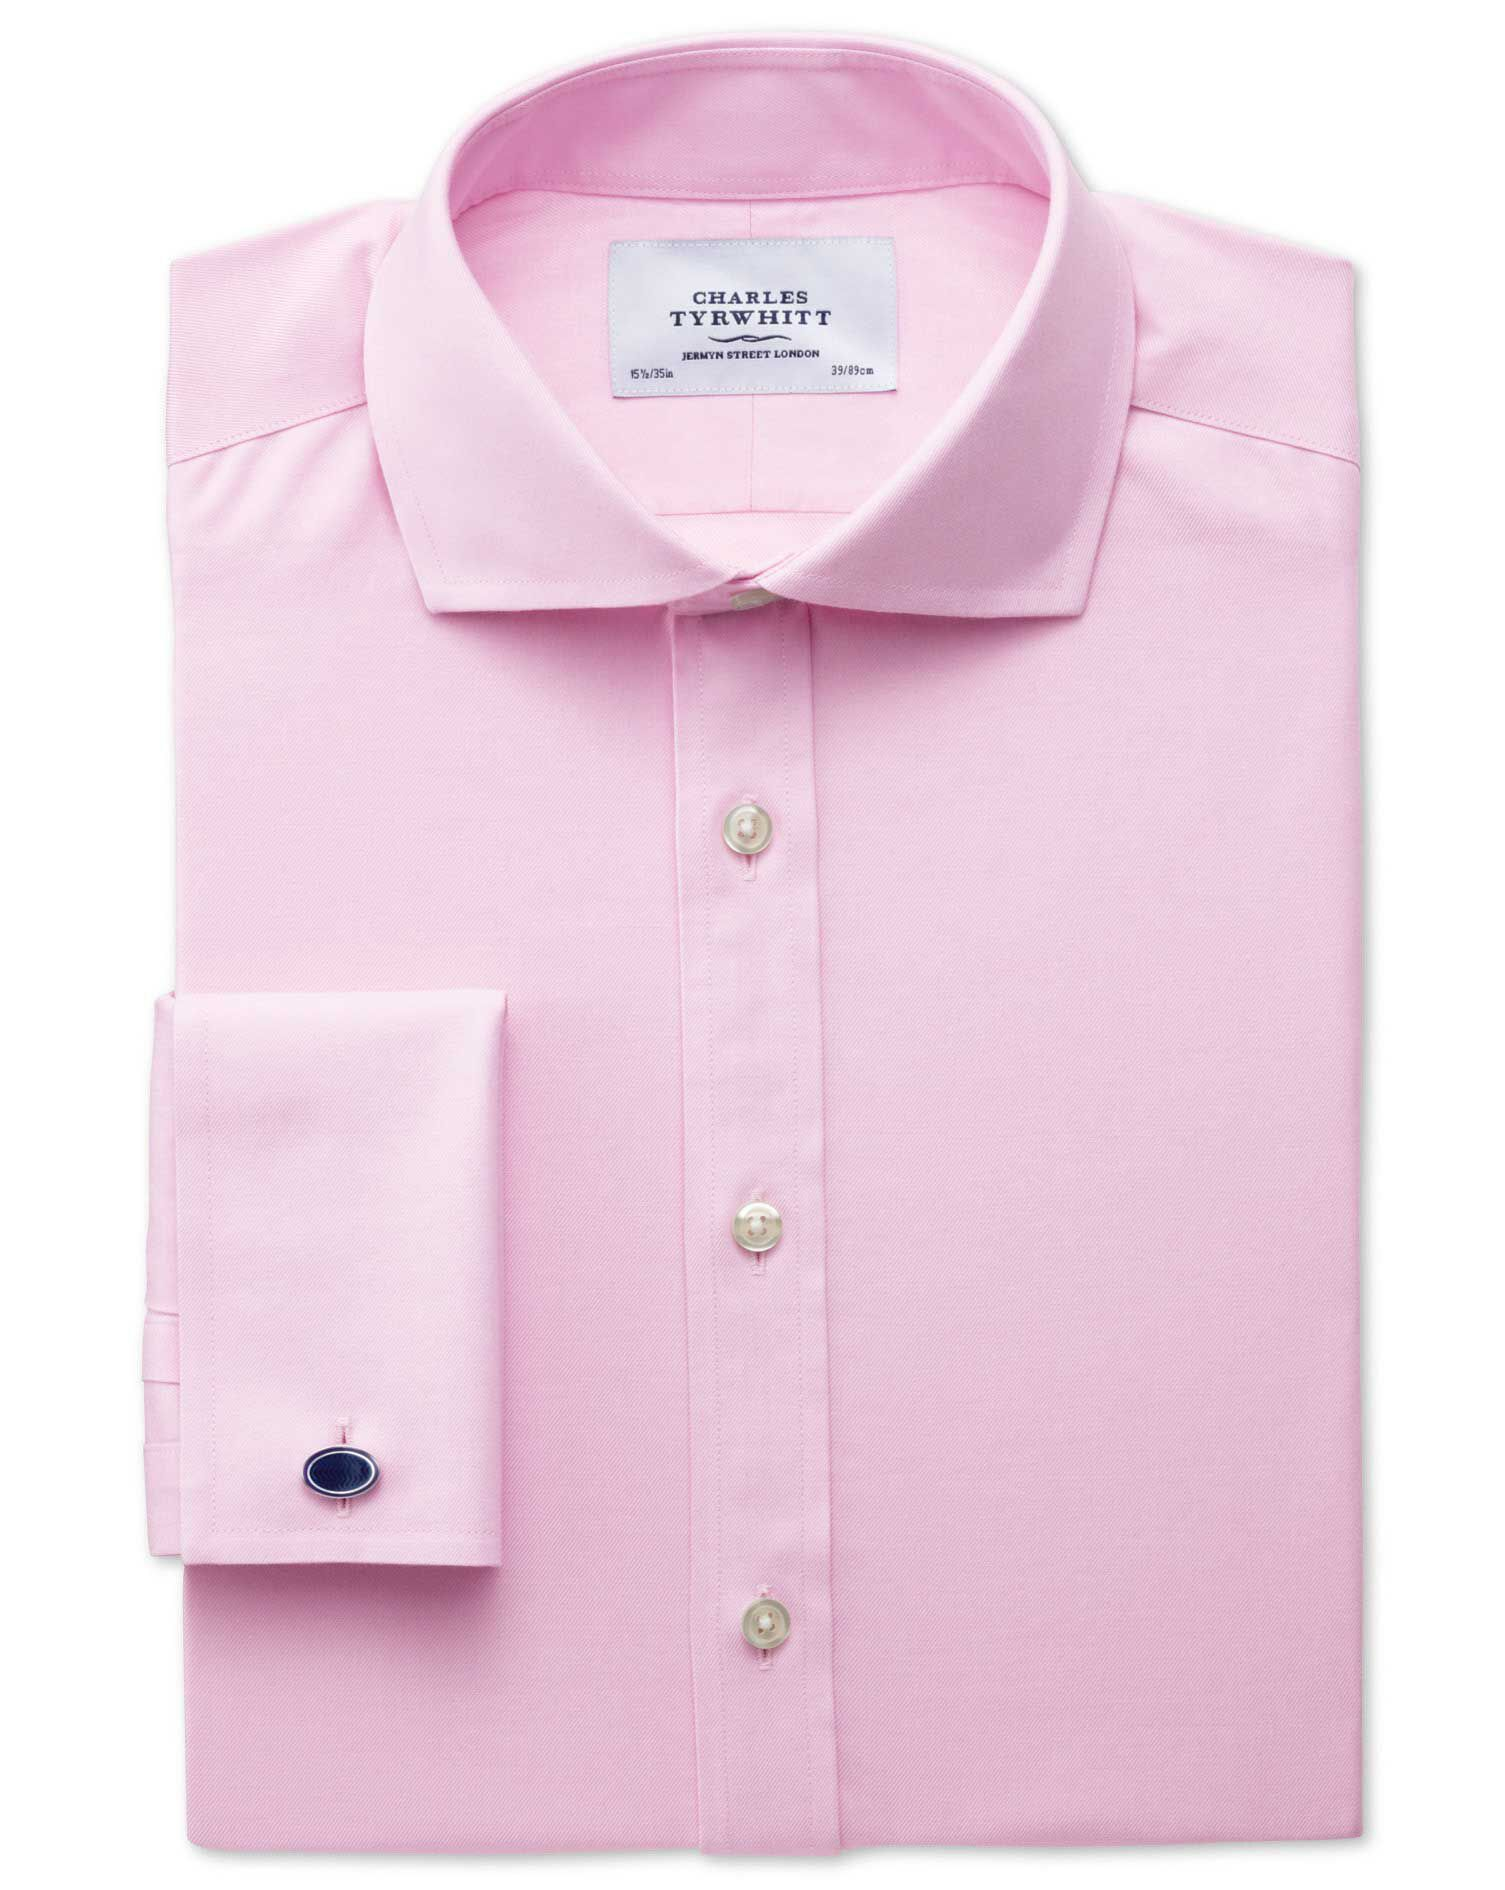 Classic Fit Cutaway Non-Iron Twill Pink Cotton Formal Shirt Single Cuff Size 17/38 by Charles Tyrwhi